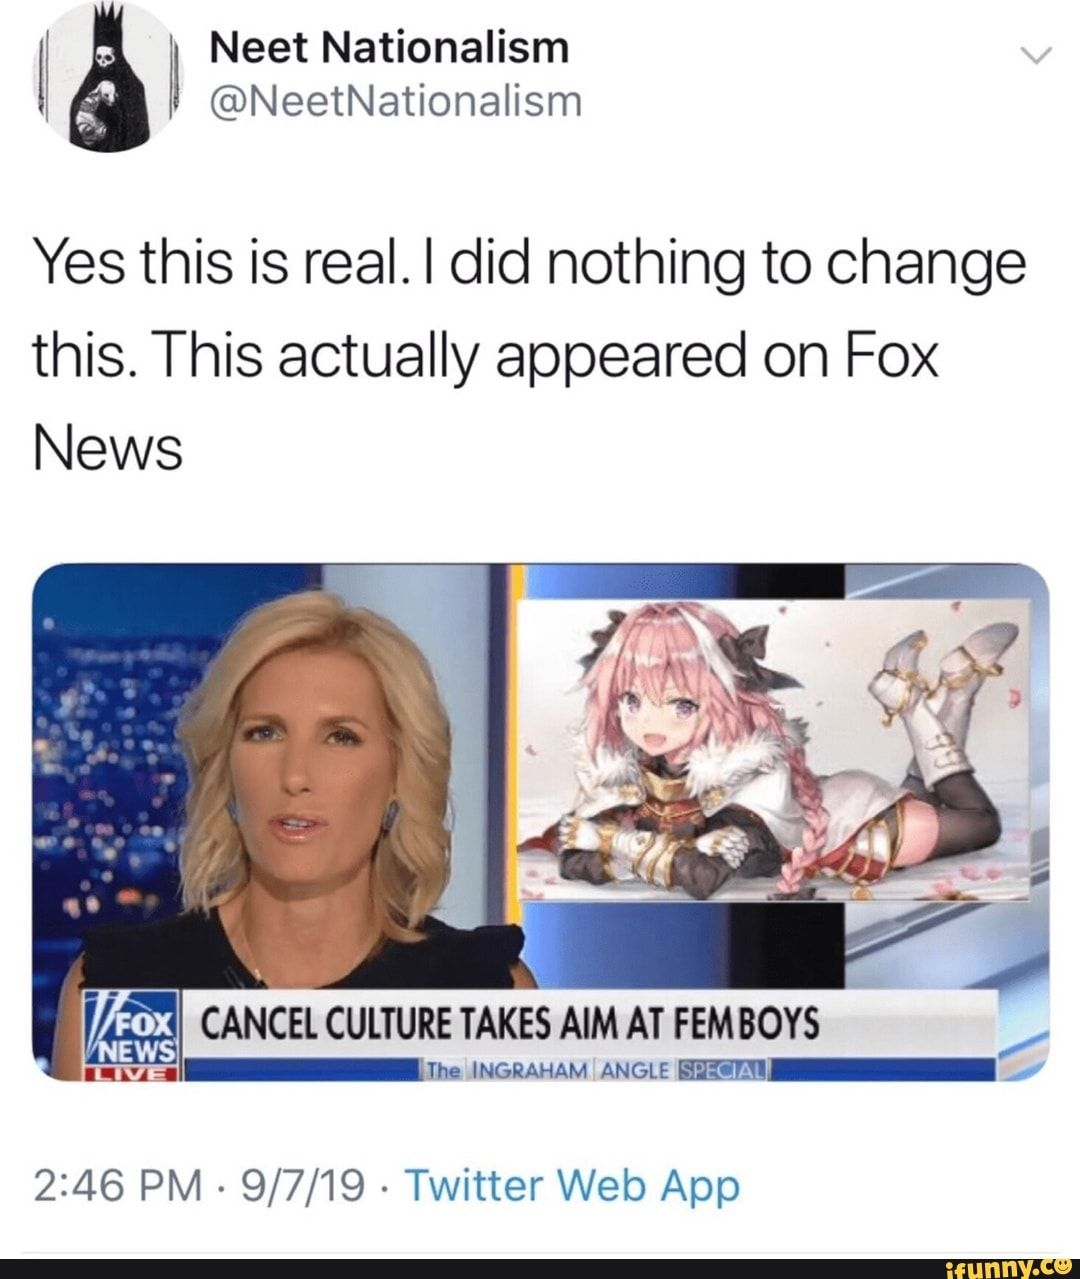 Yes This Is Real I Did Nothing To Change This This Actually Appeared On Fox News M Cancelculturetakesaim At Femboys I Ih Ingraham Angle 2 46 Pm 9 7 19 Memes Twitter Web Popular Memes